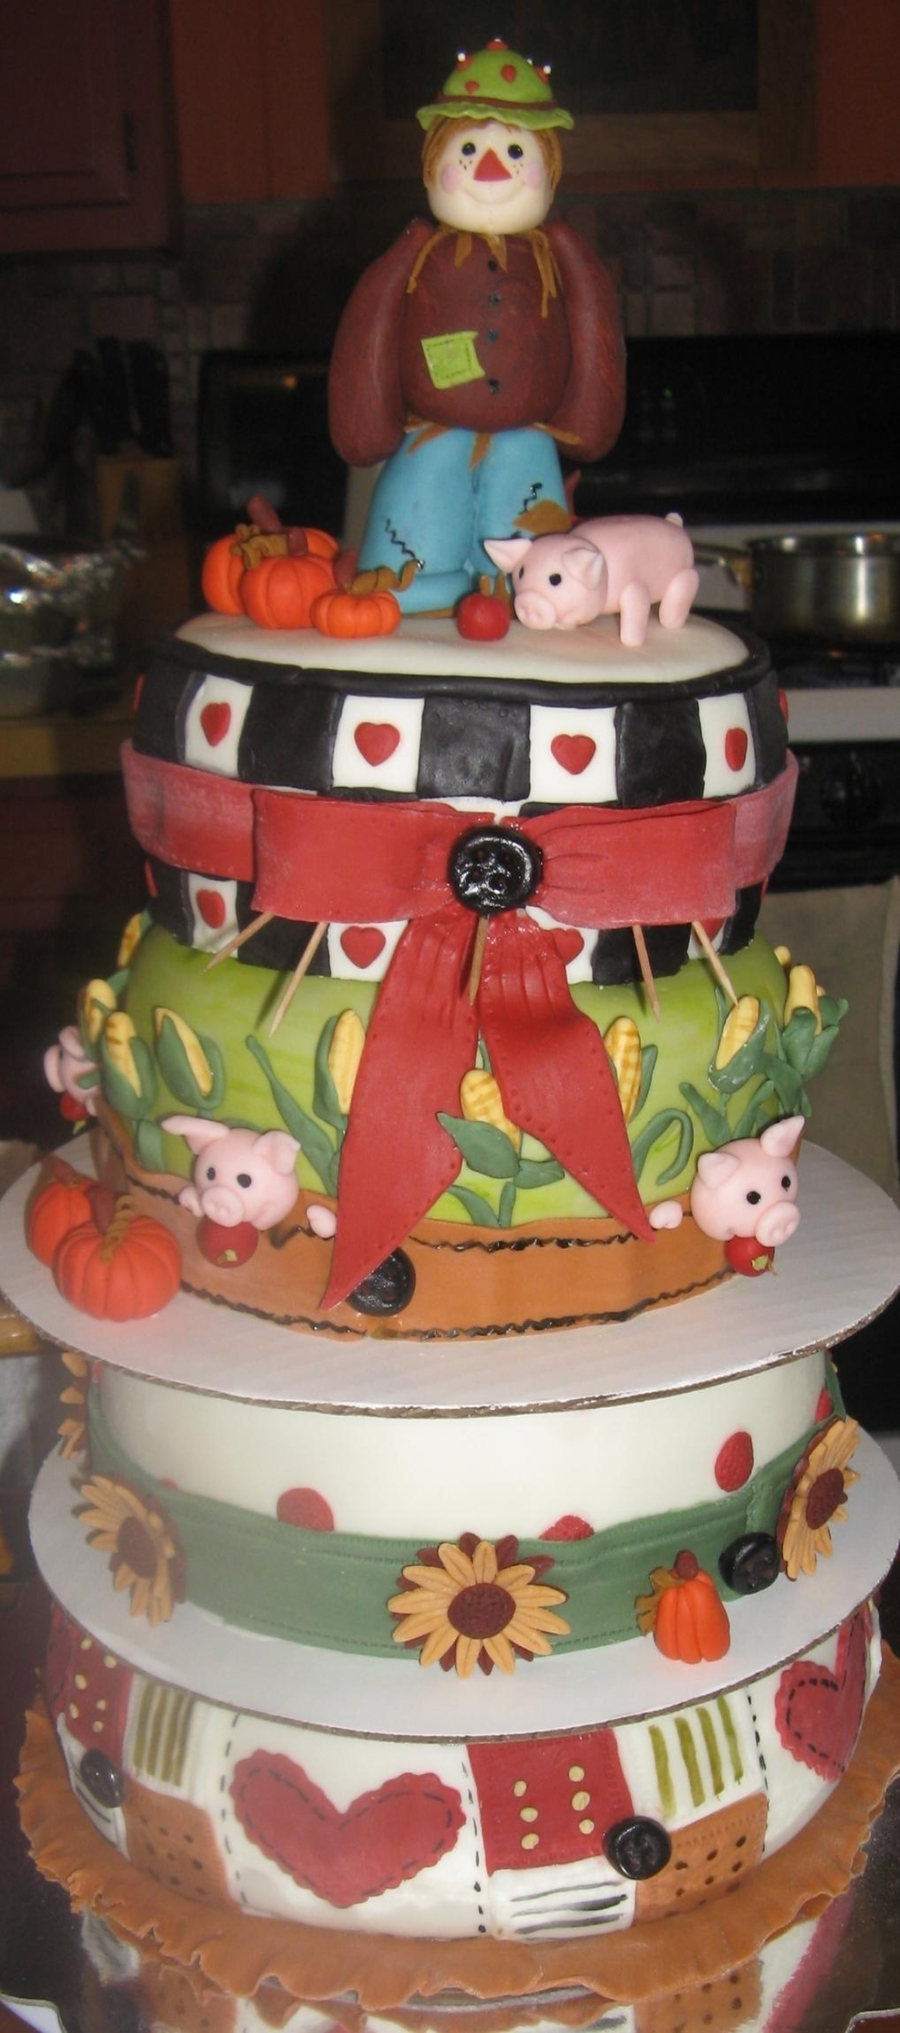 Children Of The Heart on Cake Central